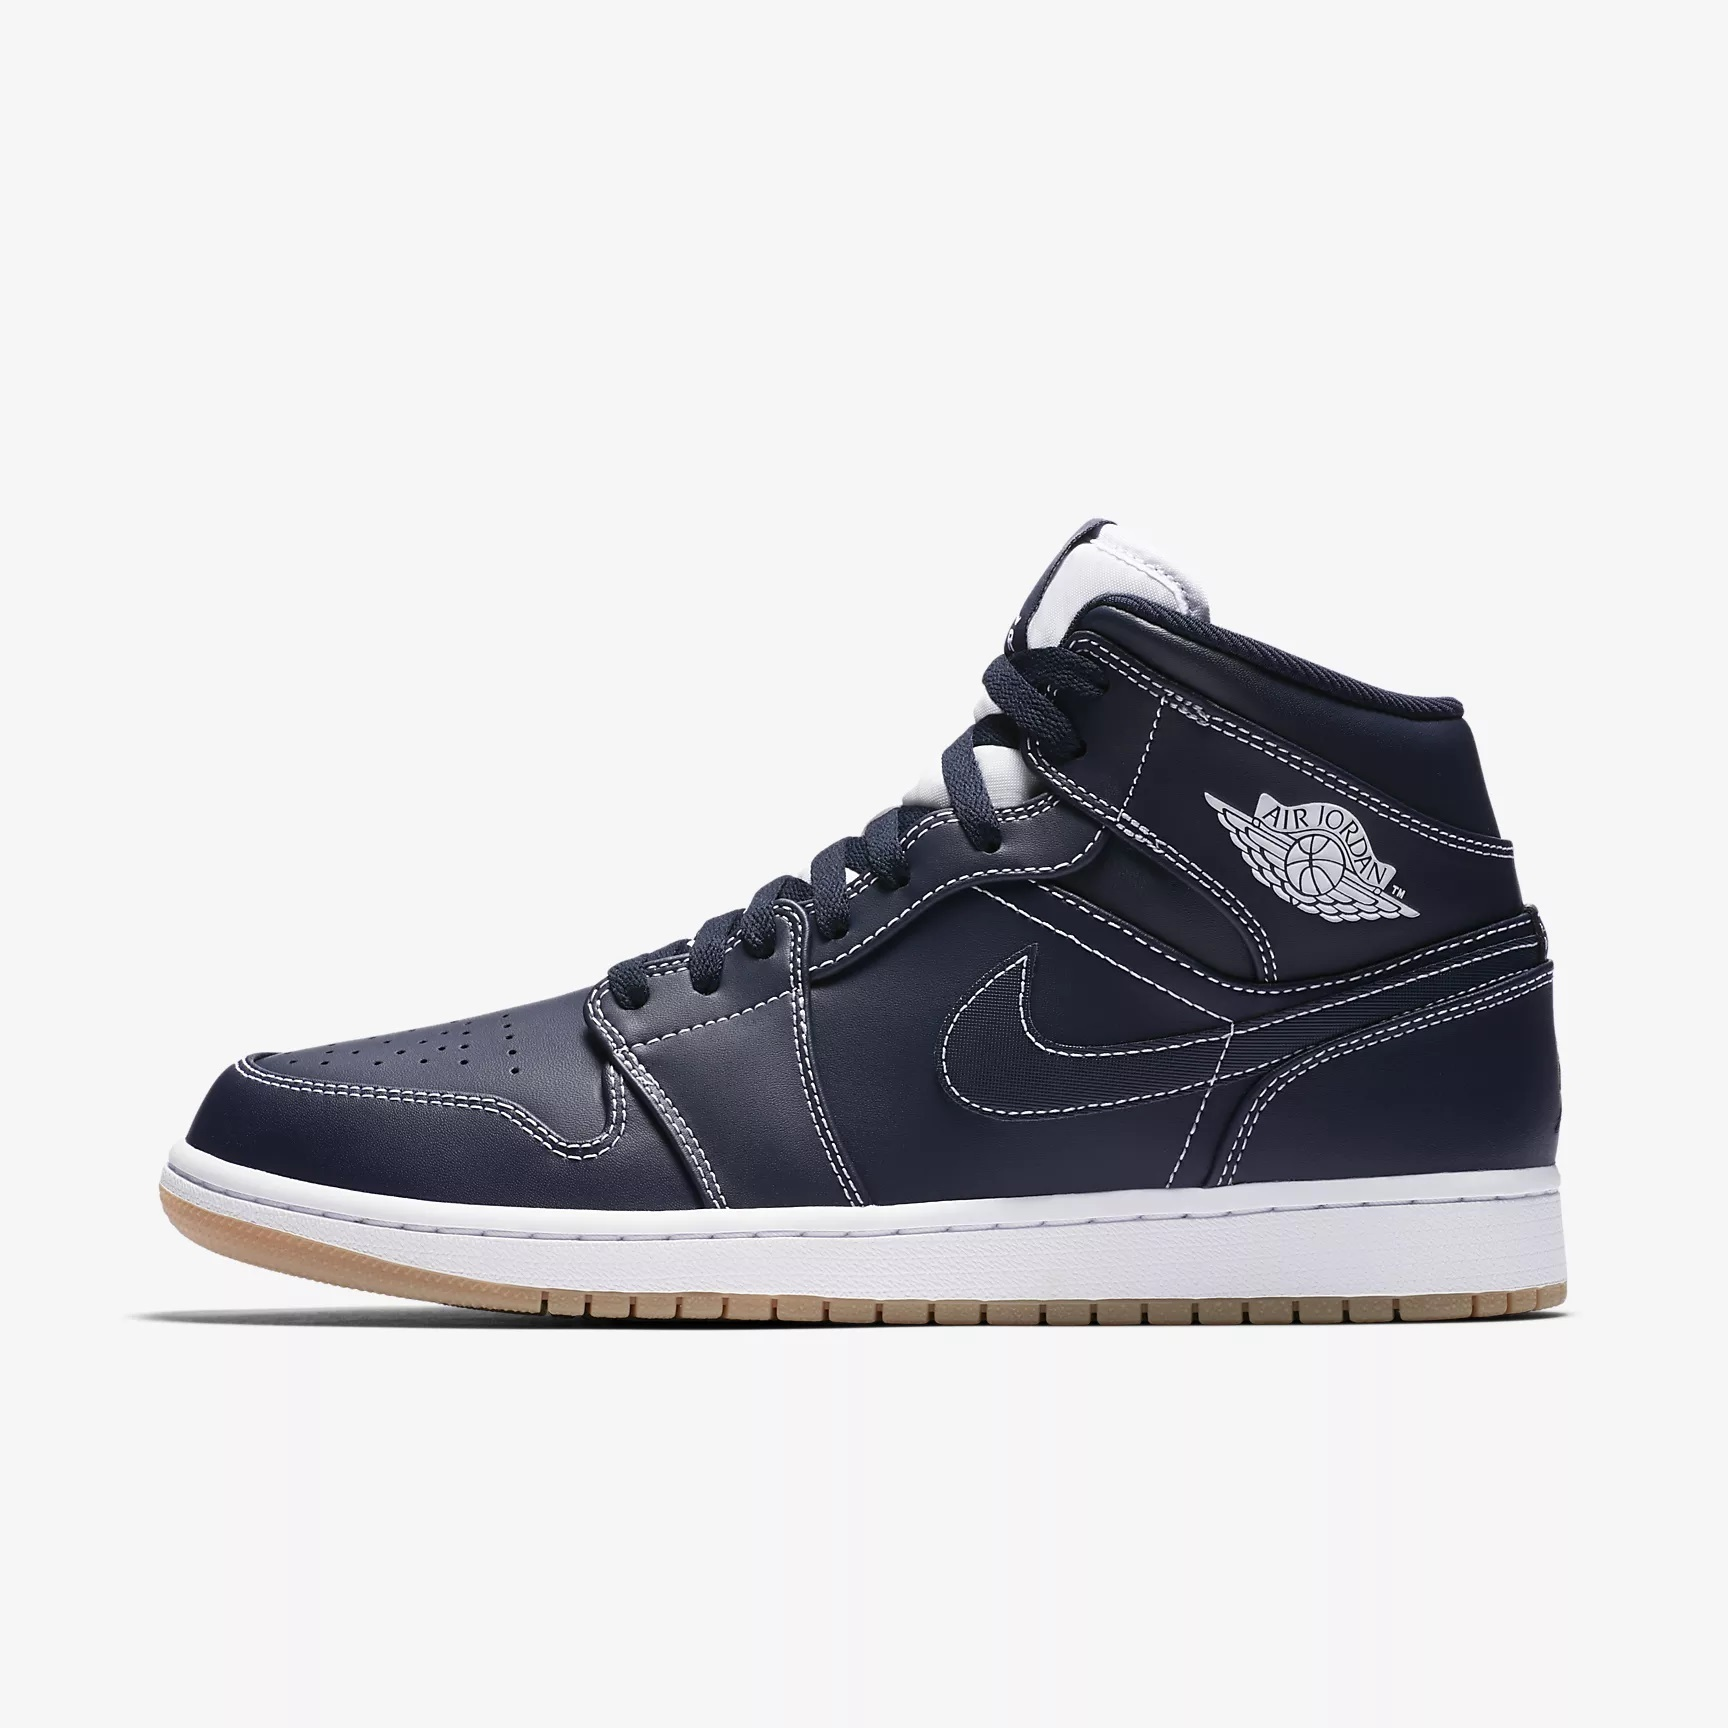 【送料込み】メンズ AIR JORDAN 1 MID RE2PECT